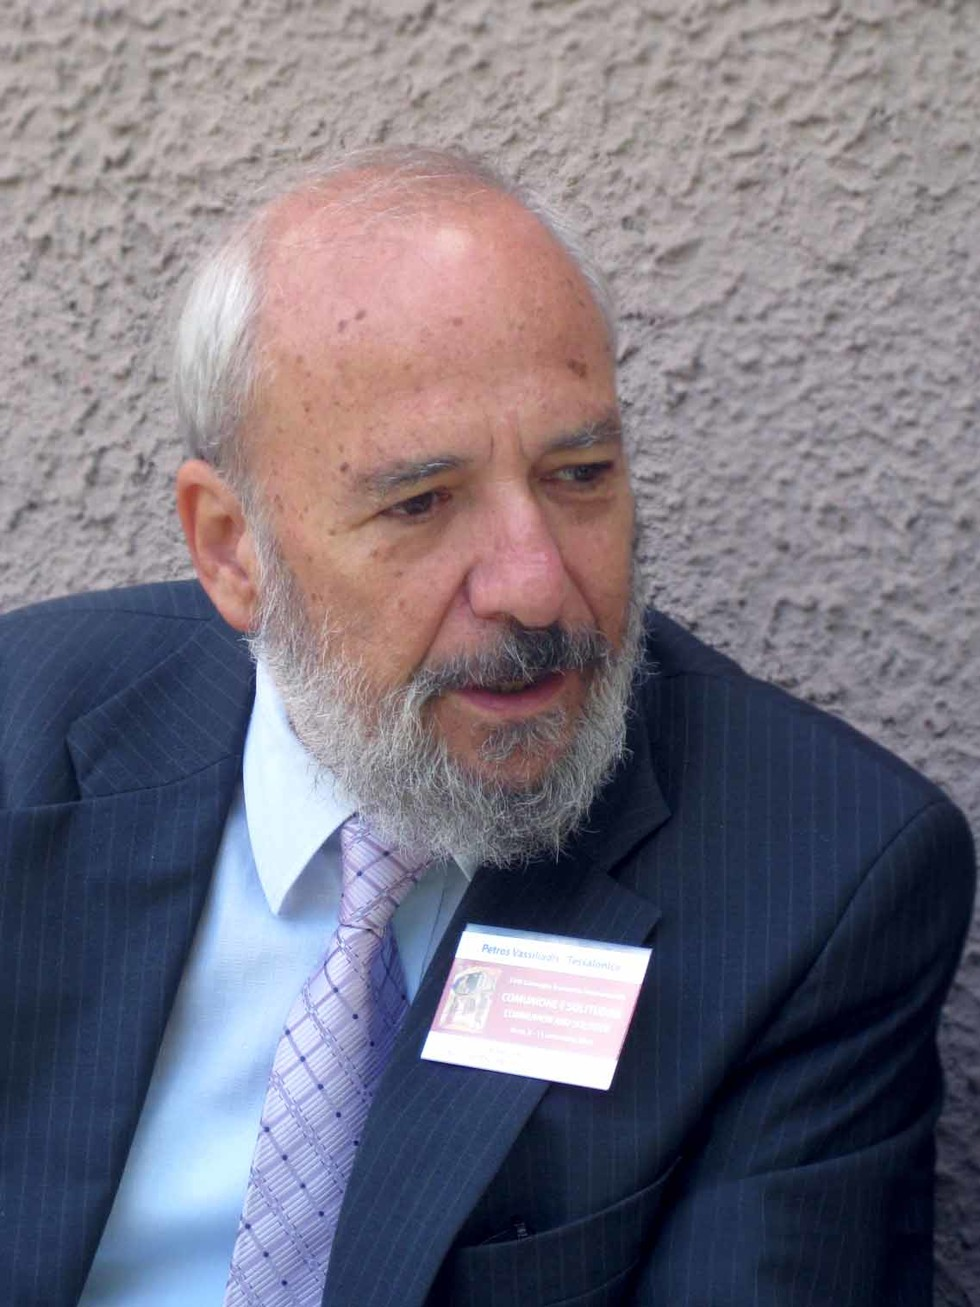 Petros Vassiliadis, Emeritus Professor at the School of Theology, Aristotle University of Thessaloniki, President of the World Conference of Associations of Theological Institutions (WOCATI)